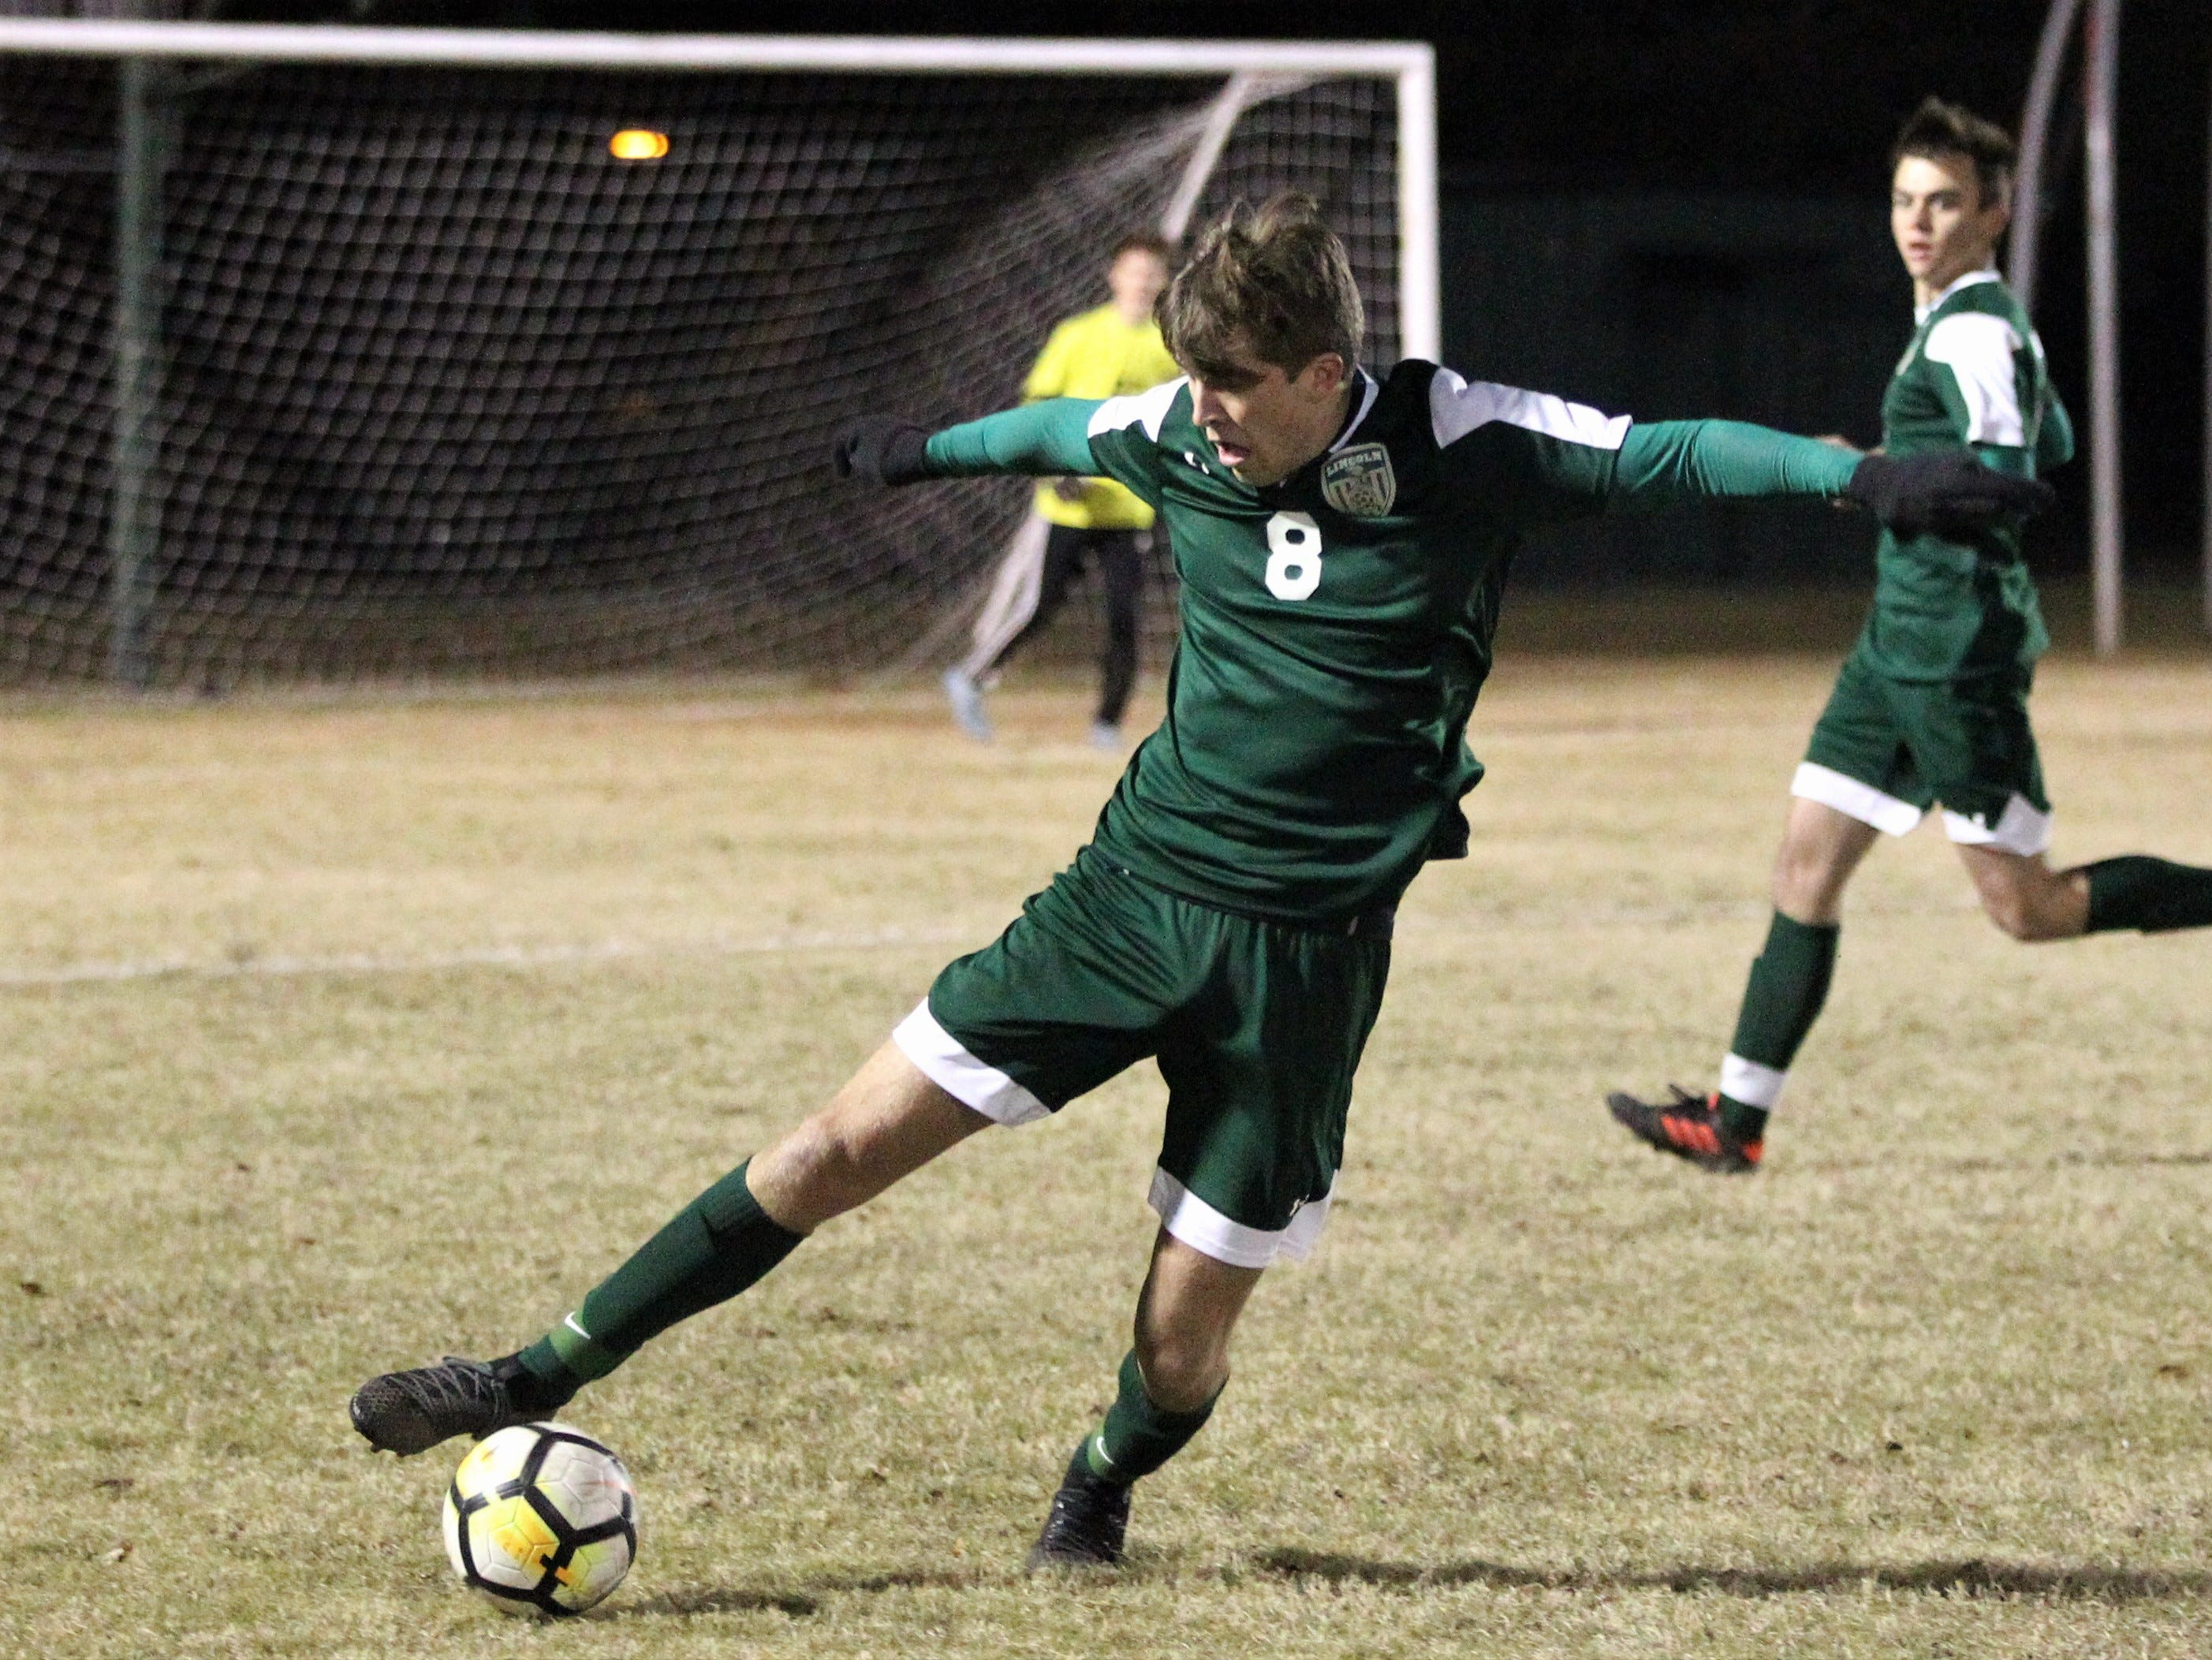 Lincoln defender Nick Molinaro stops a through ball as Chiles' boys soccer team beat Lincoln 1-0 in a District 2-4A semifinal on Jan. 30, 2019.